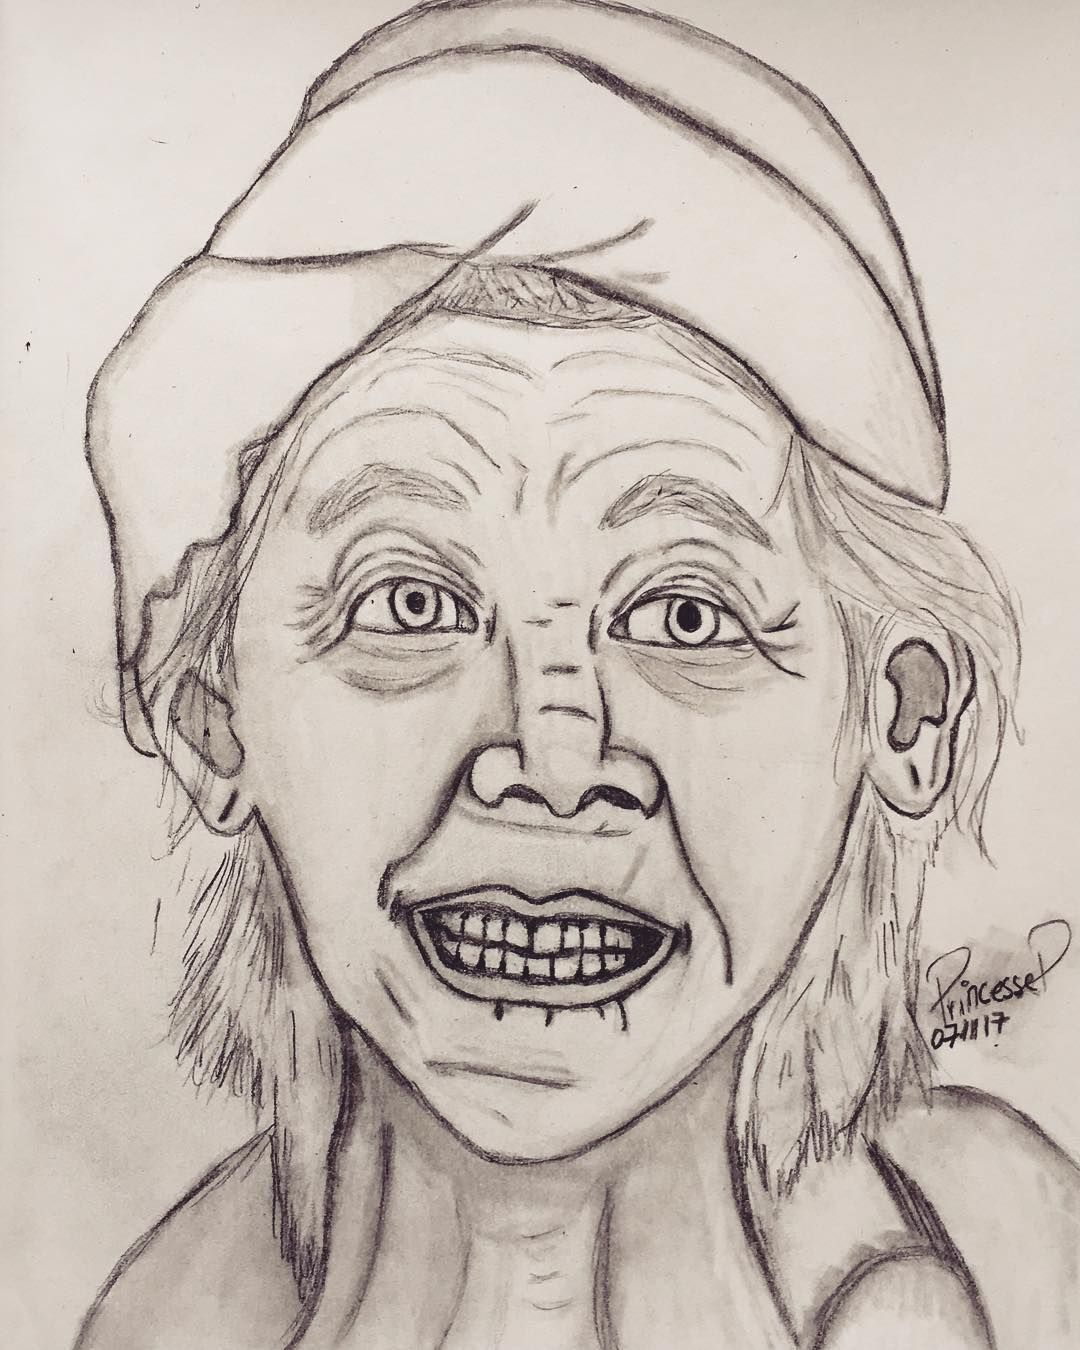 Artist paperdrawing art drawings drawingoftheday portraits draw draws pencil sketch blackandwhite nanny oldpeople drawingaday pencildrawing